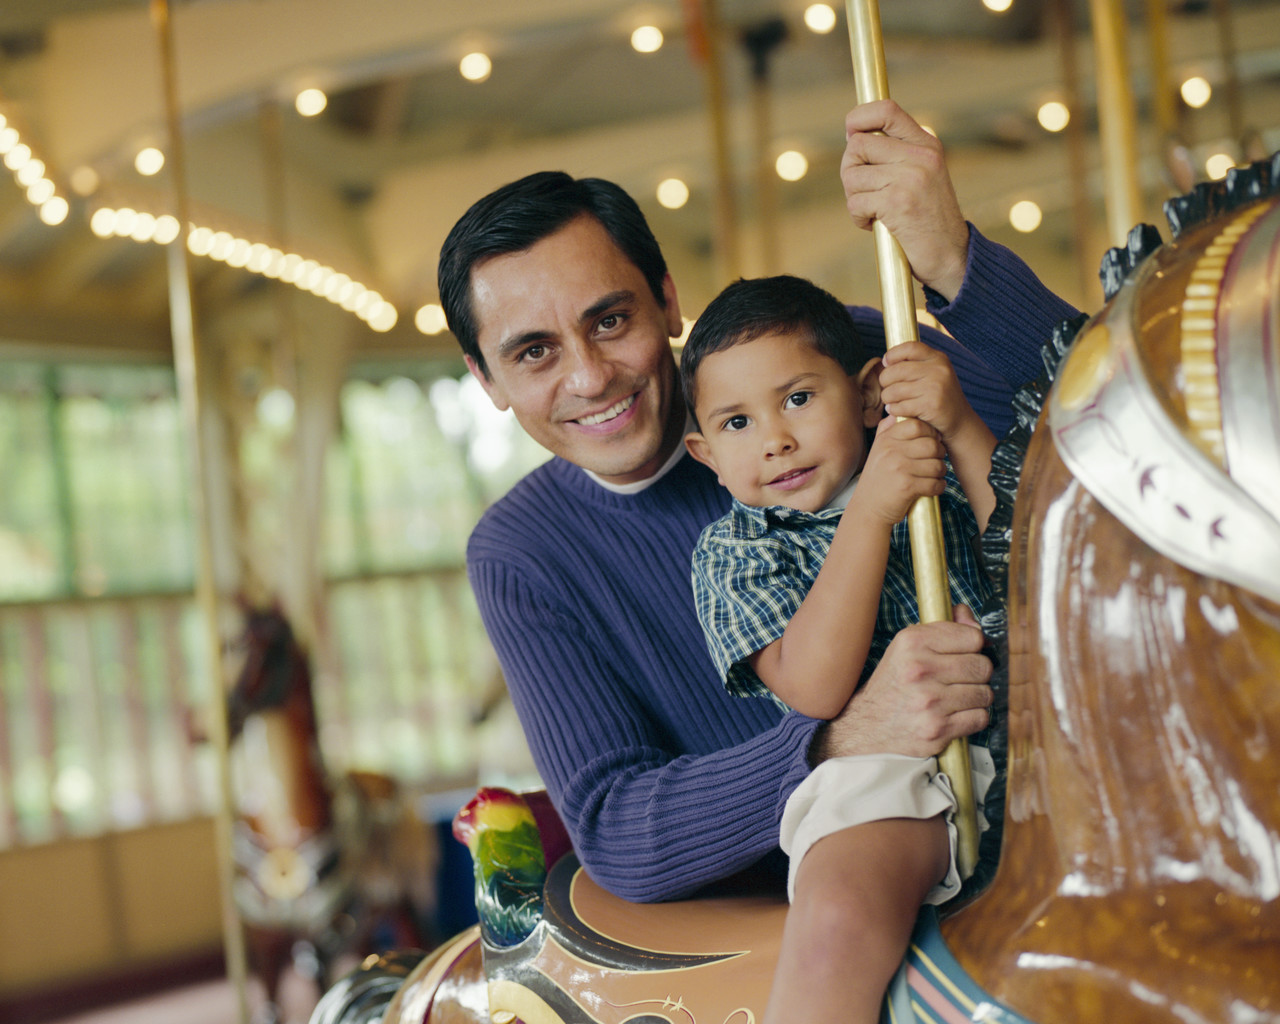 Father and Son Riding Carousel Horse